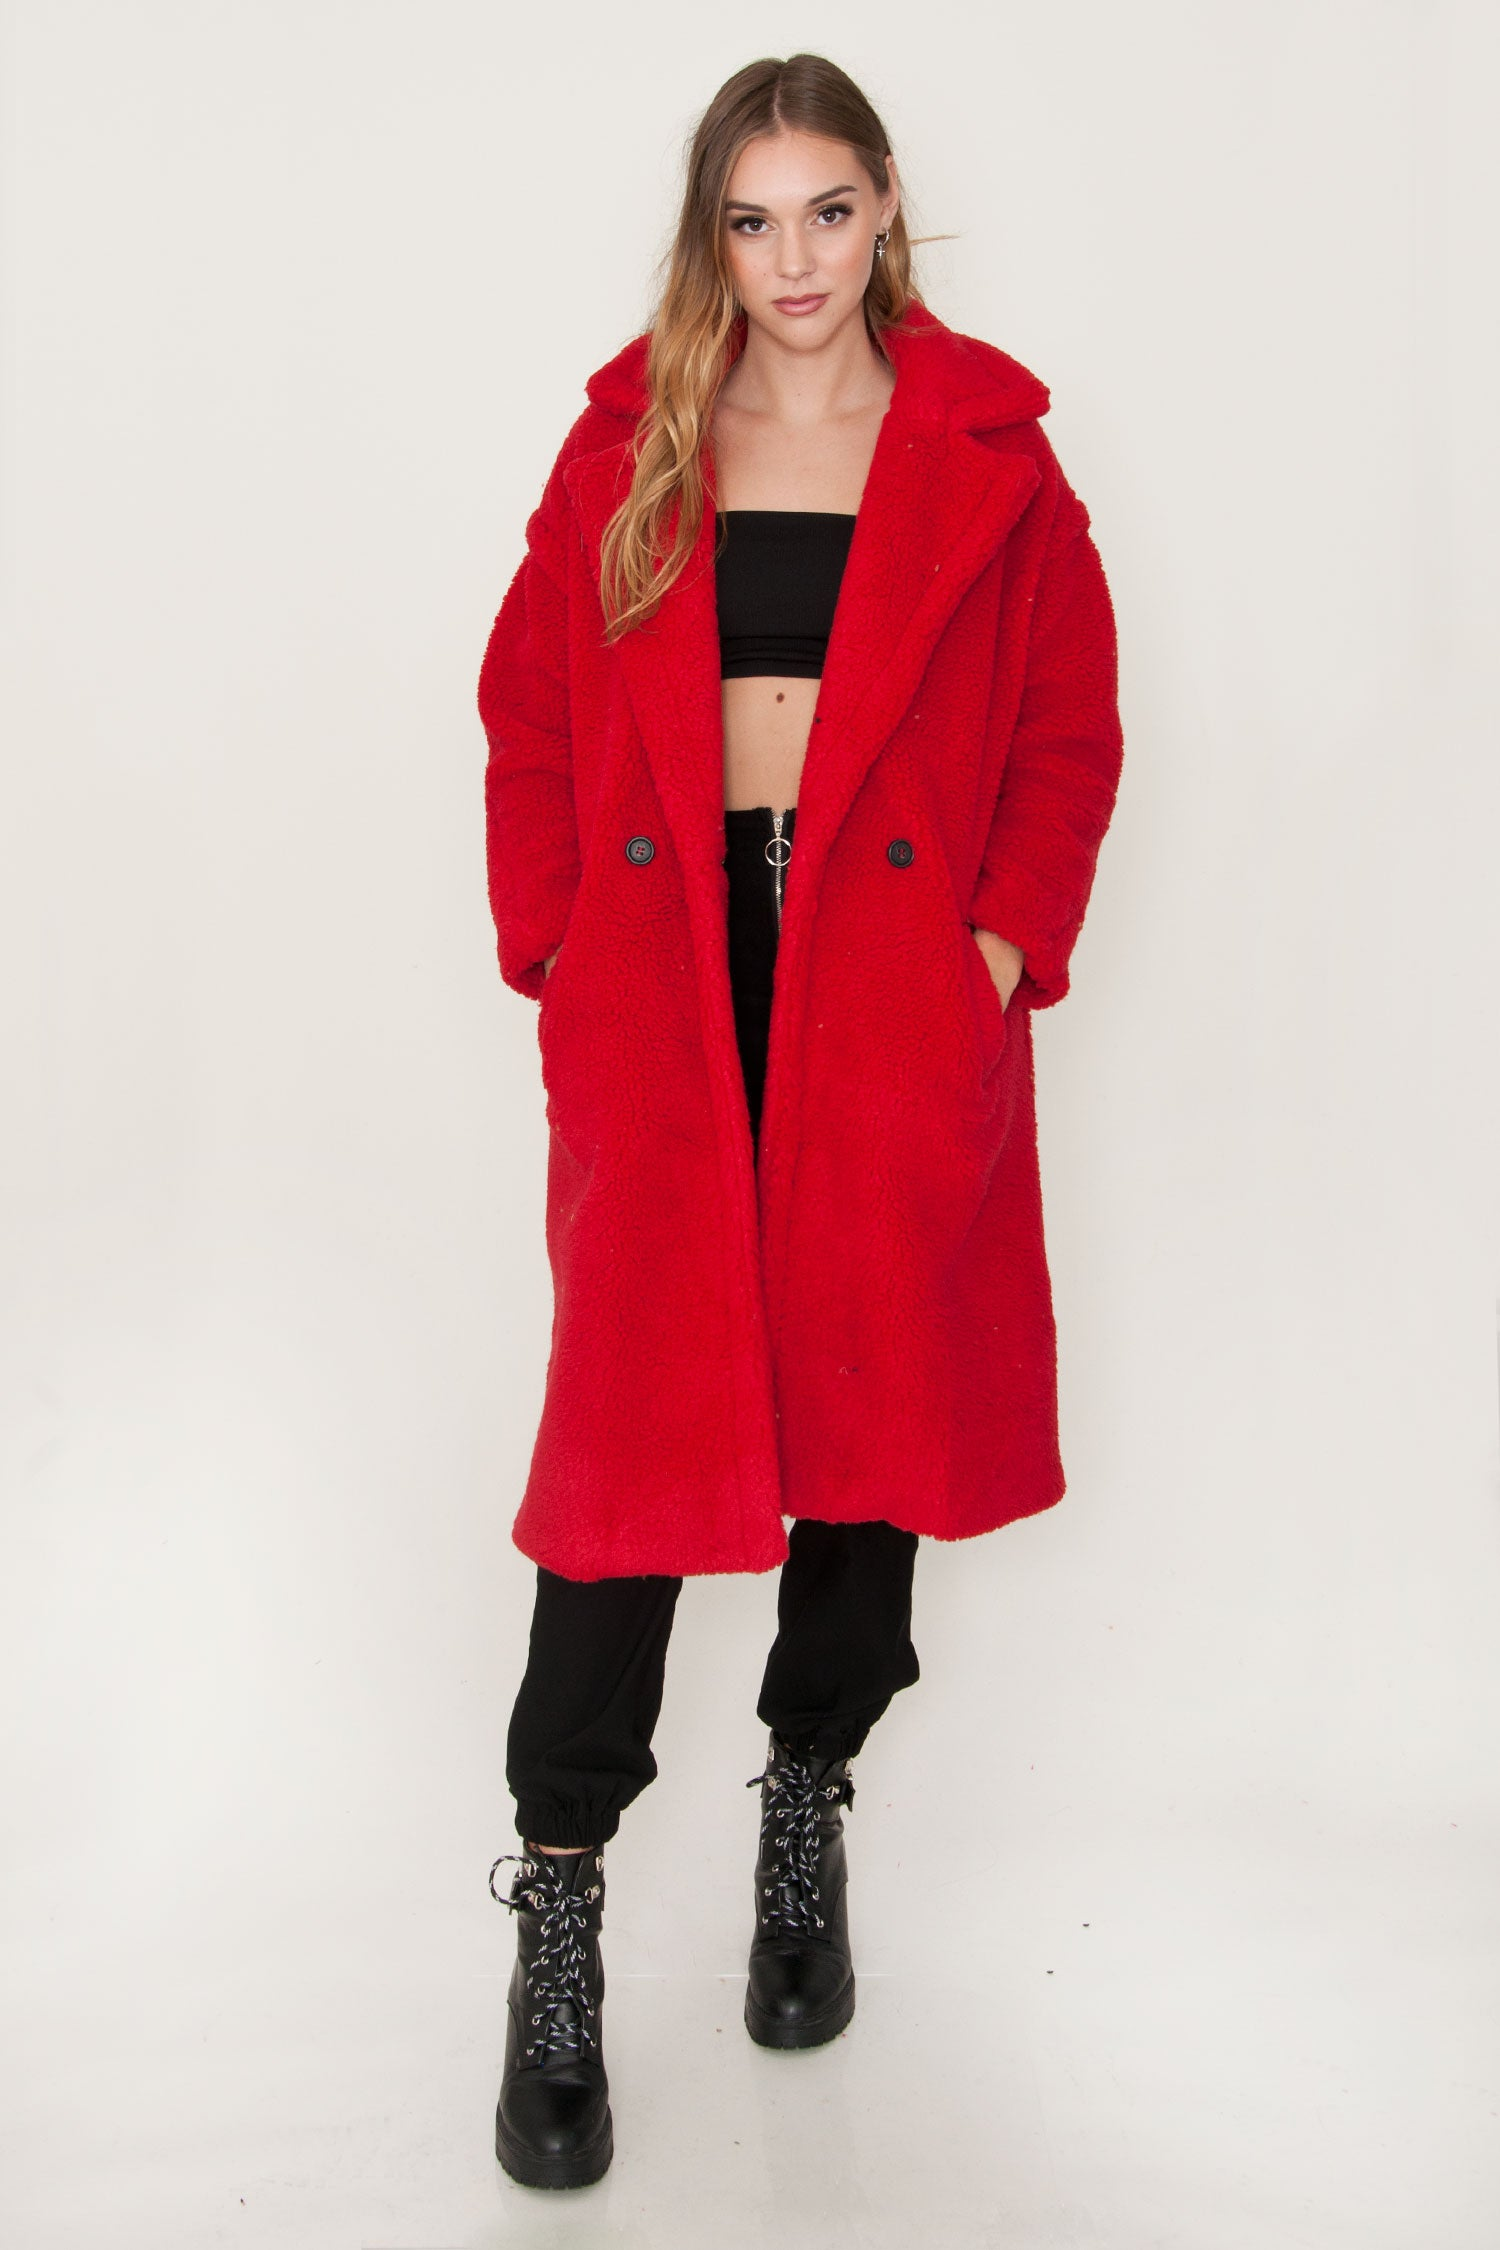 The Pavilion Red Teddy Trench